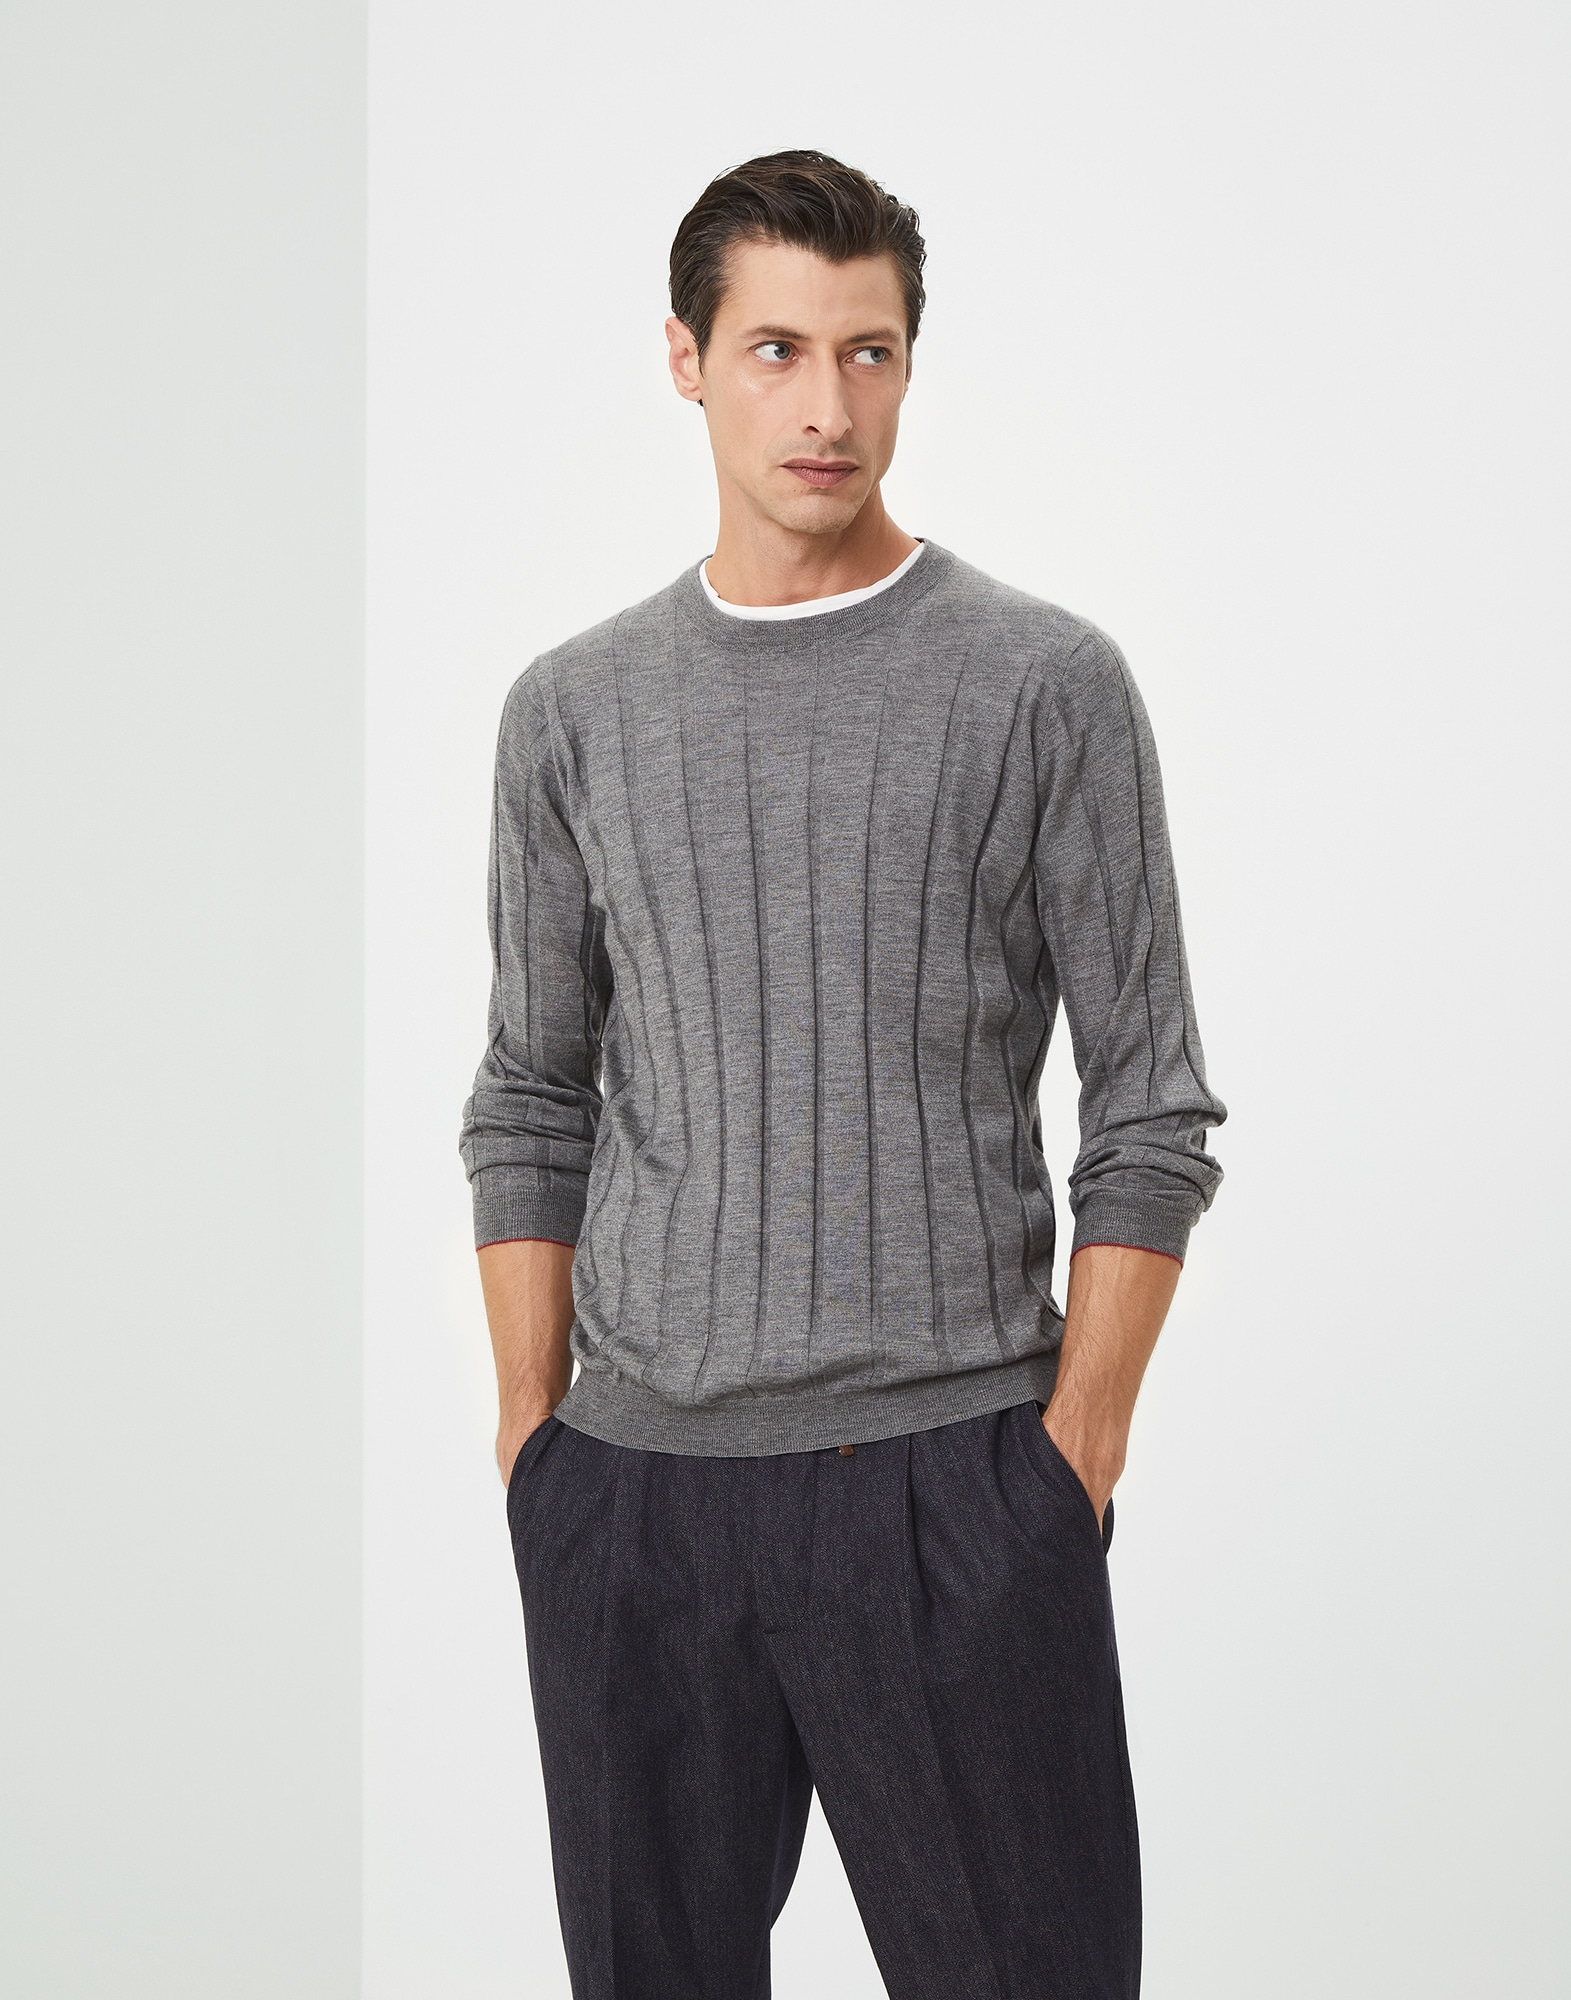 Crewneck Sweater Dark Grey Man 1 - Brunello Cucinelli